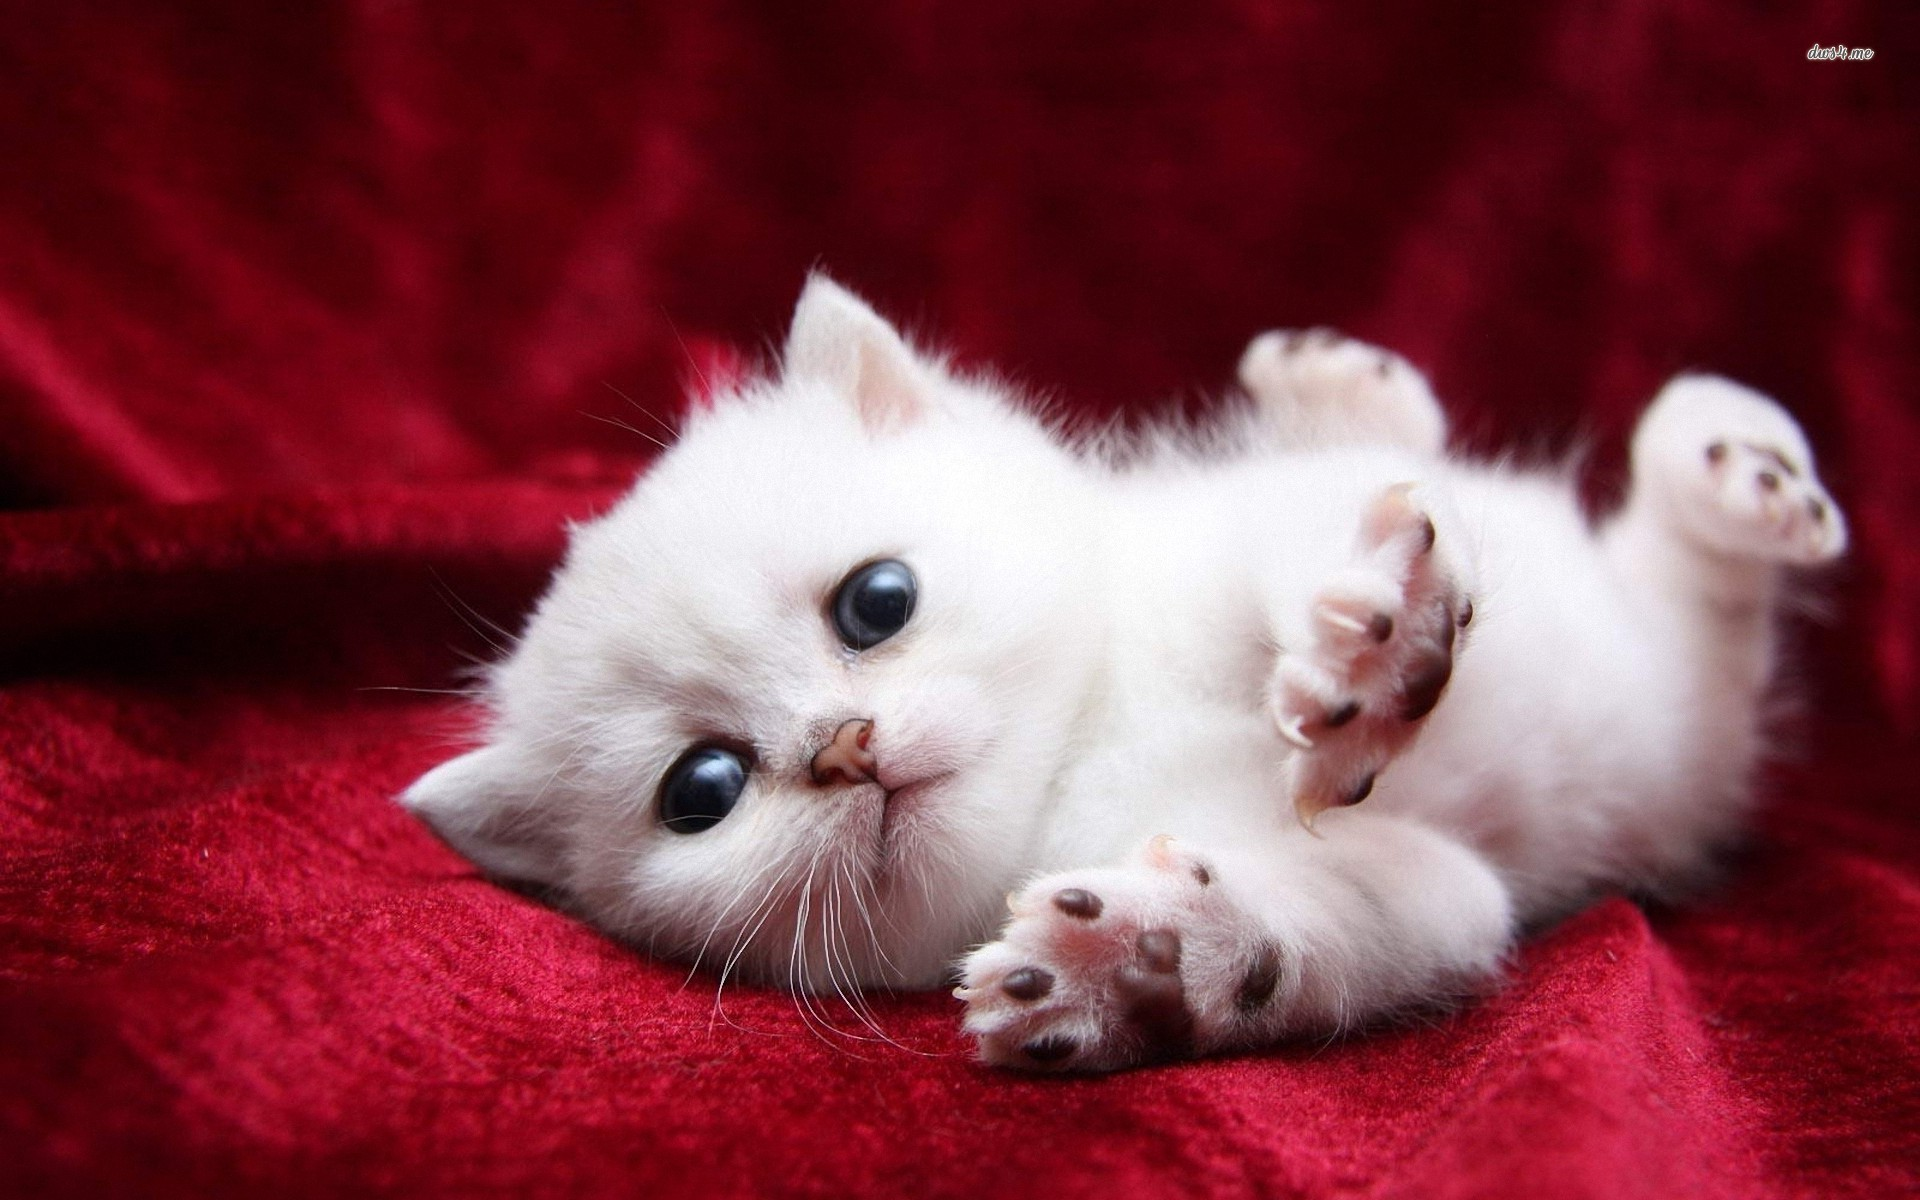 White Cats And Kittens Wallpapers